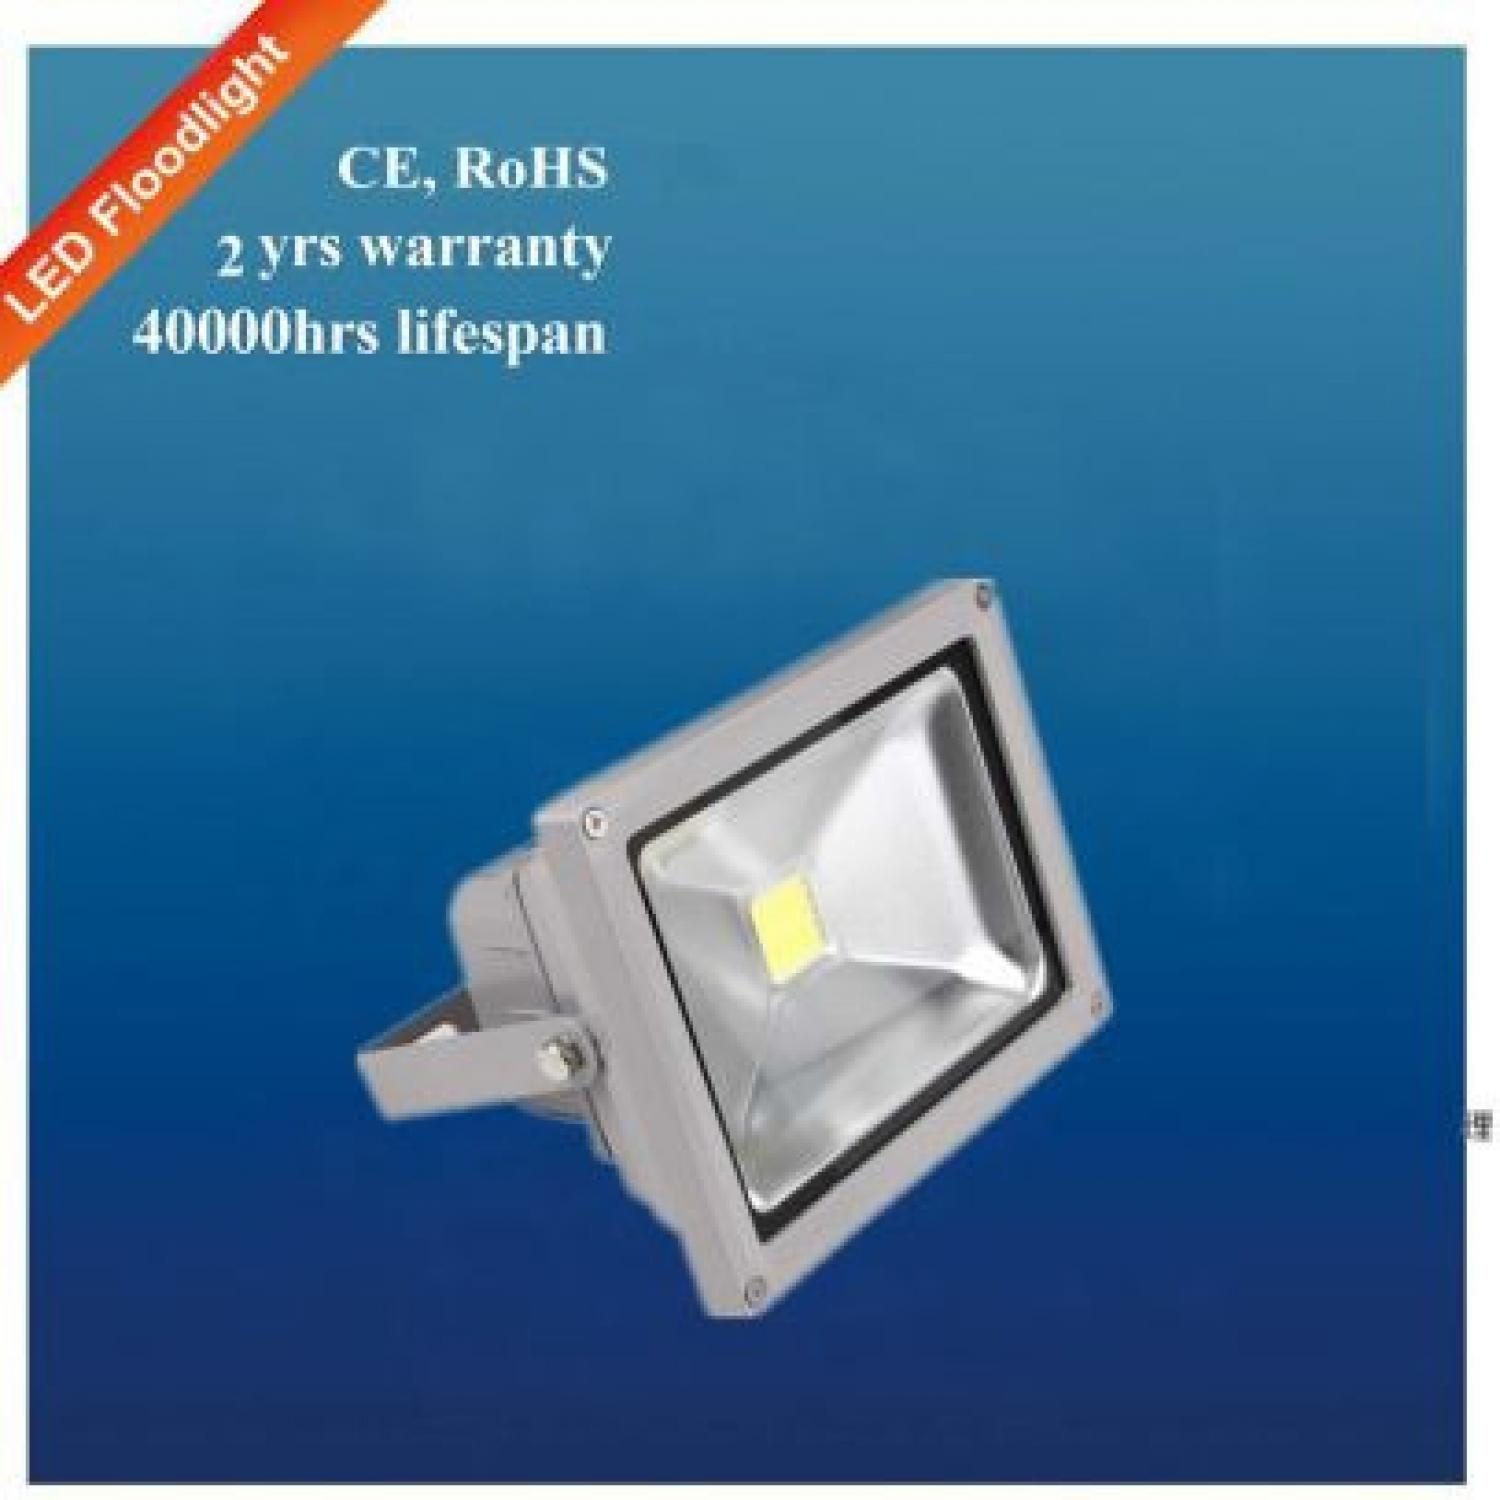 Taffware LED Floodlight 30W Without PIR